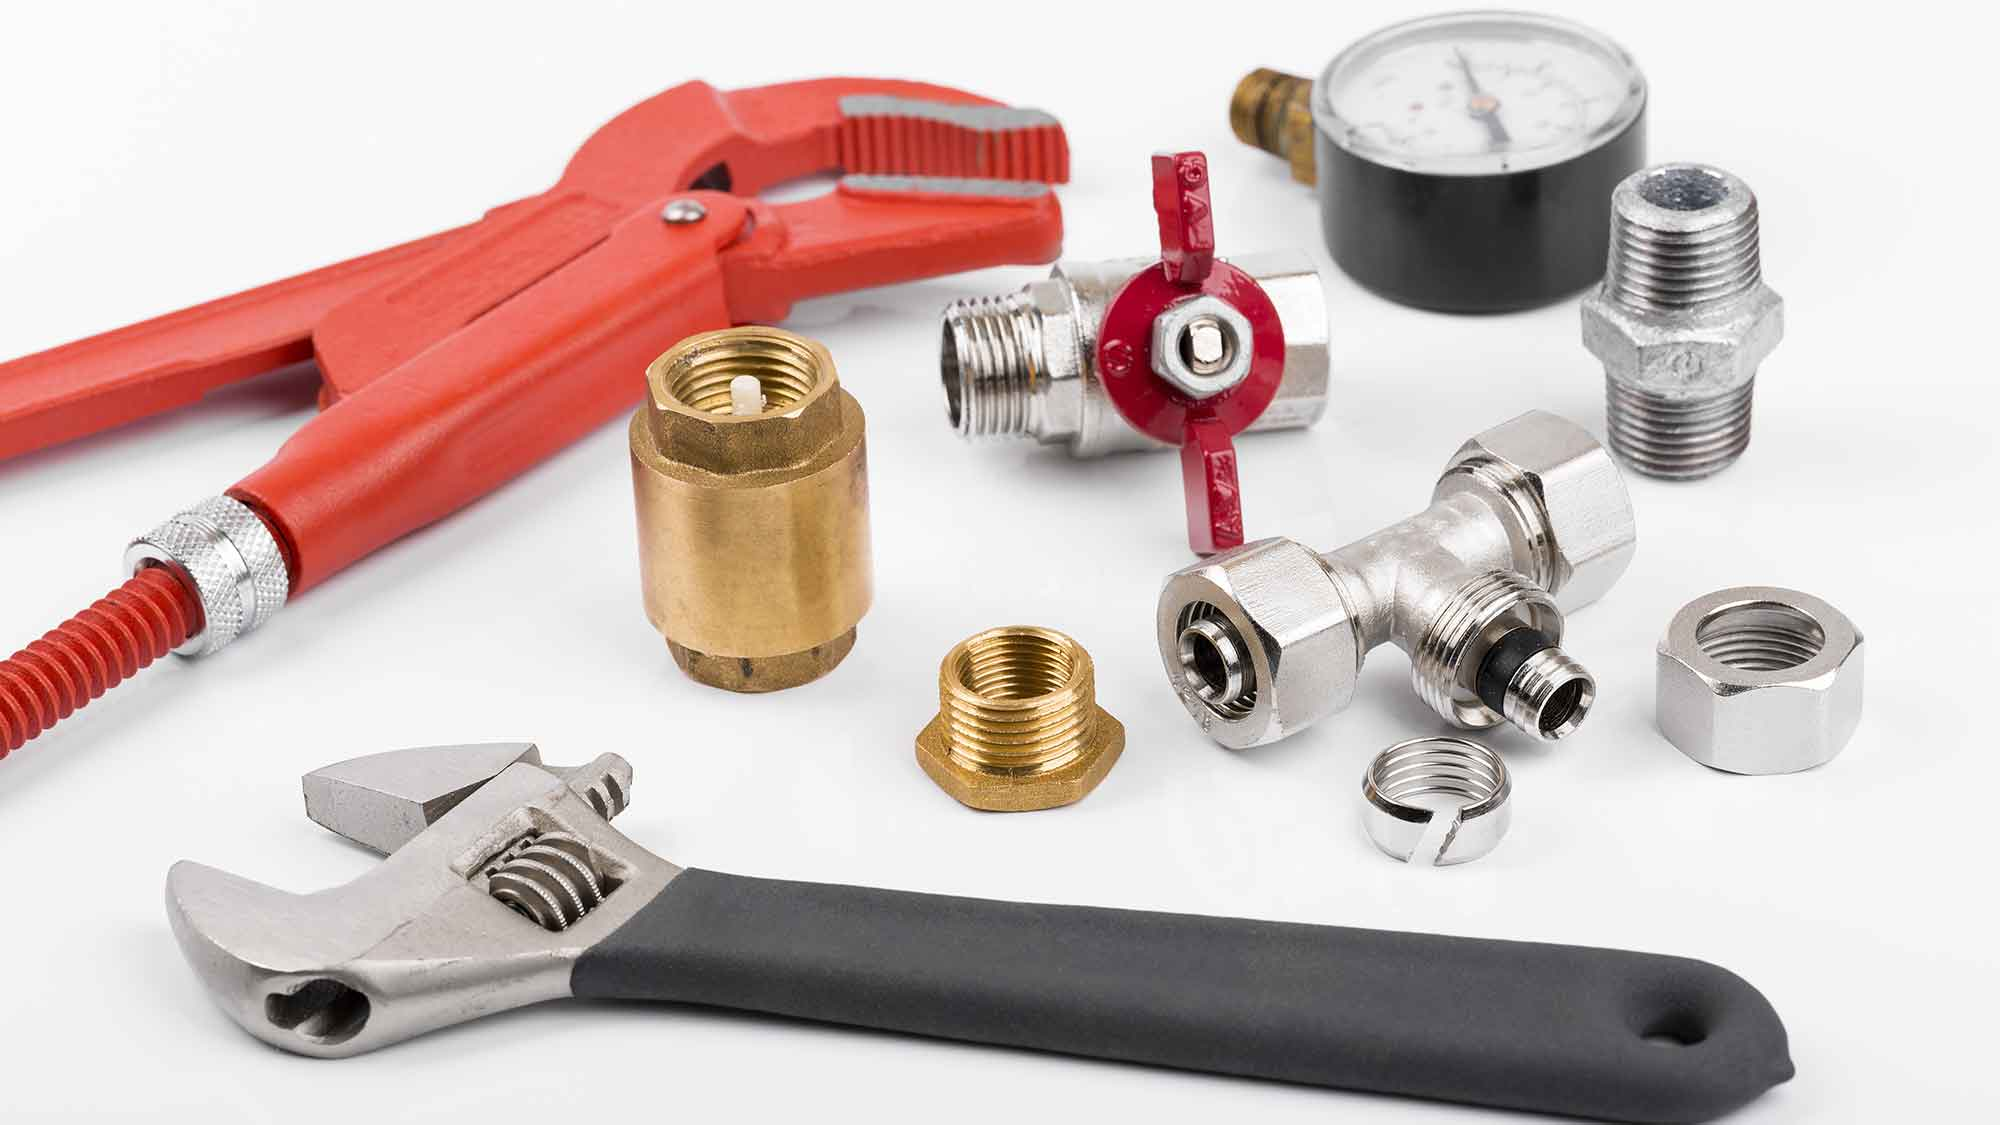 central heating servicing essex maintenance leigh on sea tools